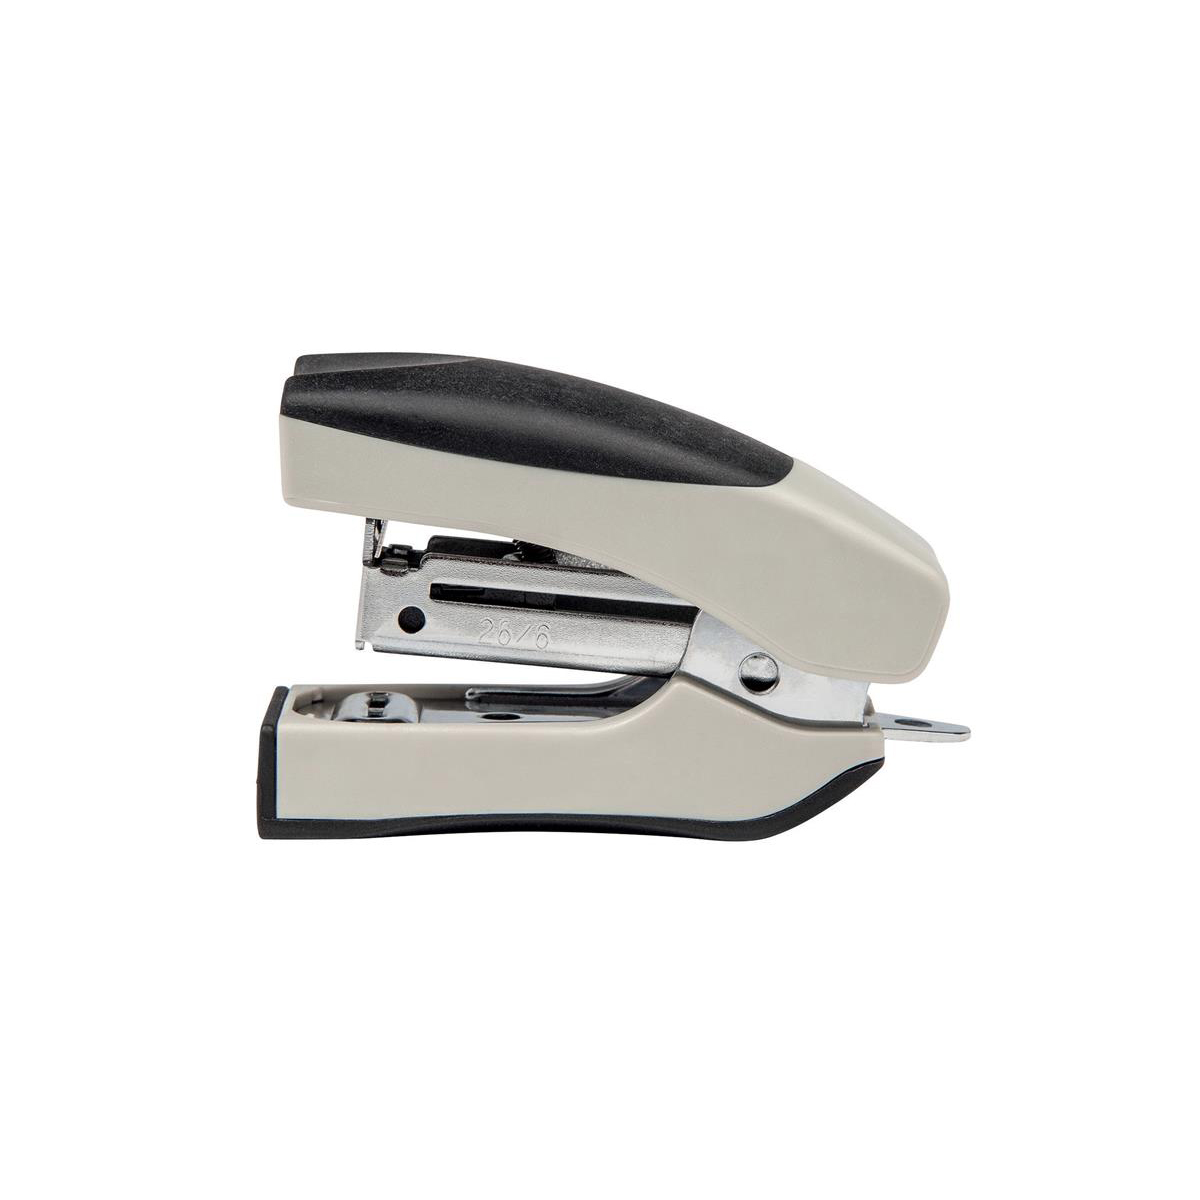 Long Arm Staplers 5 Star Office Stand-up Stapler Capacity 20 Sheets 50 Staples Silver/Black